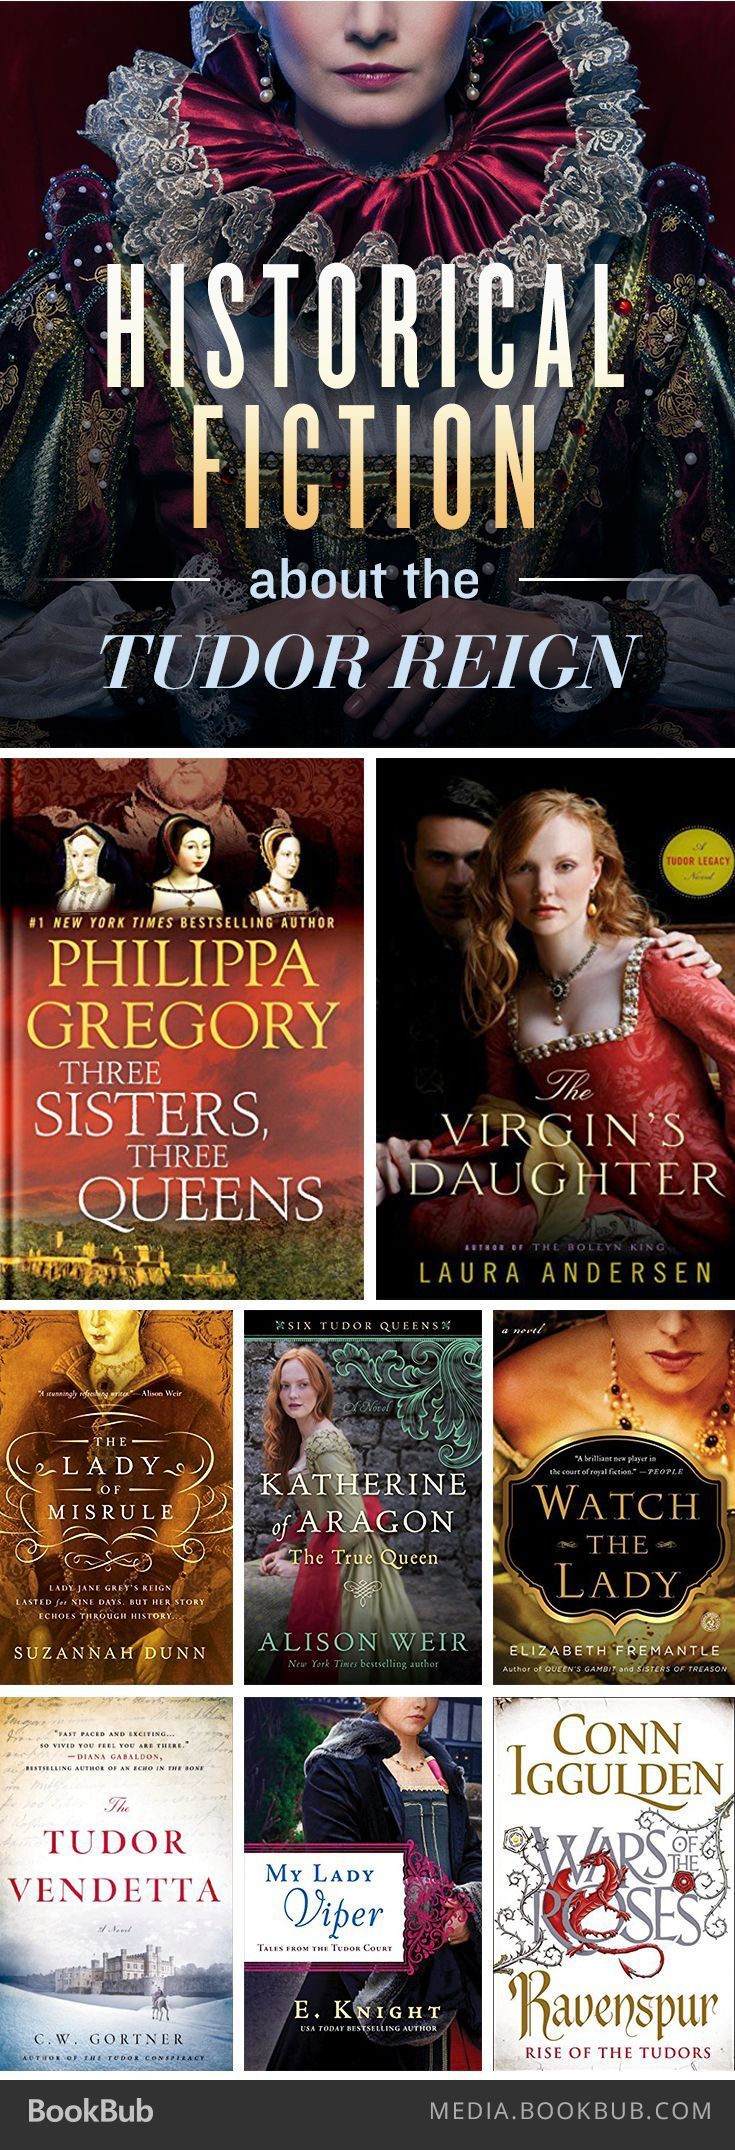 The 25+ Best Alison Weir Ideas On Pinterest  Philippa Gregory, Fiction  Books And Historical Fiction Books